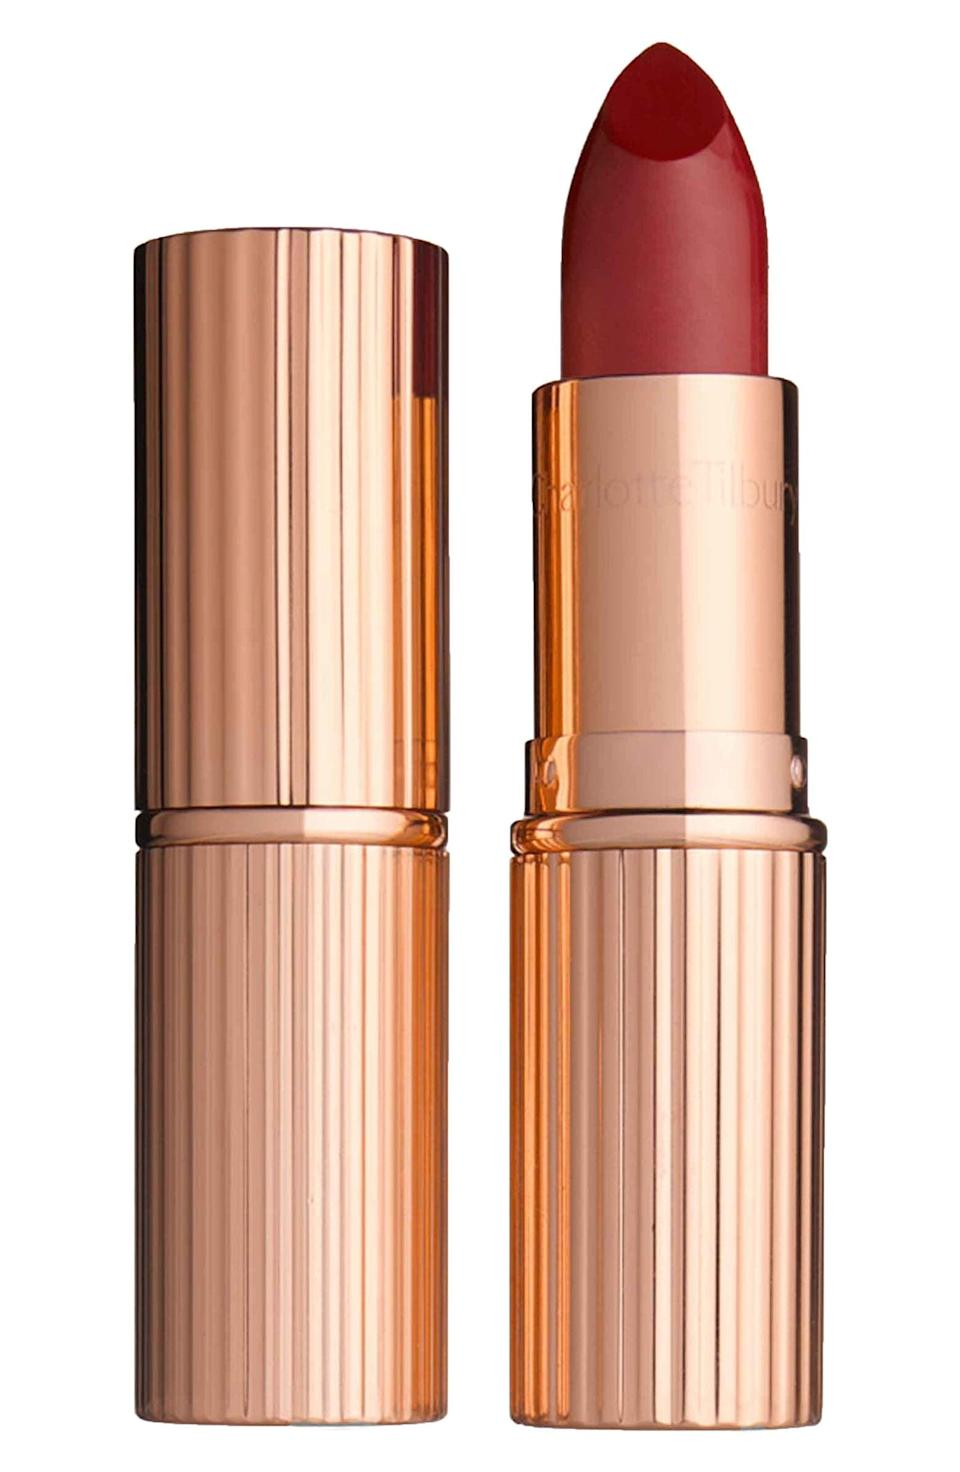 <p>The <span>Charlotte Tilbury K.I.S.S.I.N.G. Lipstick</span> ($34) comes in 10 stunning shades that look amazing on all skin tones.</p>